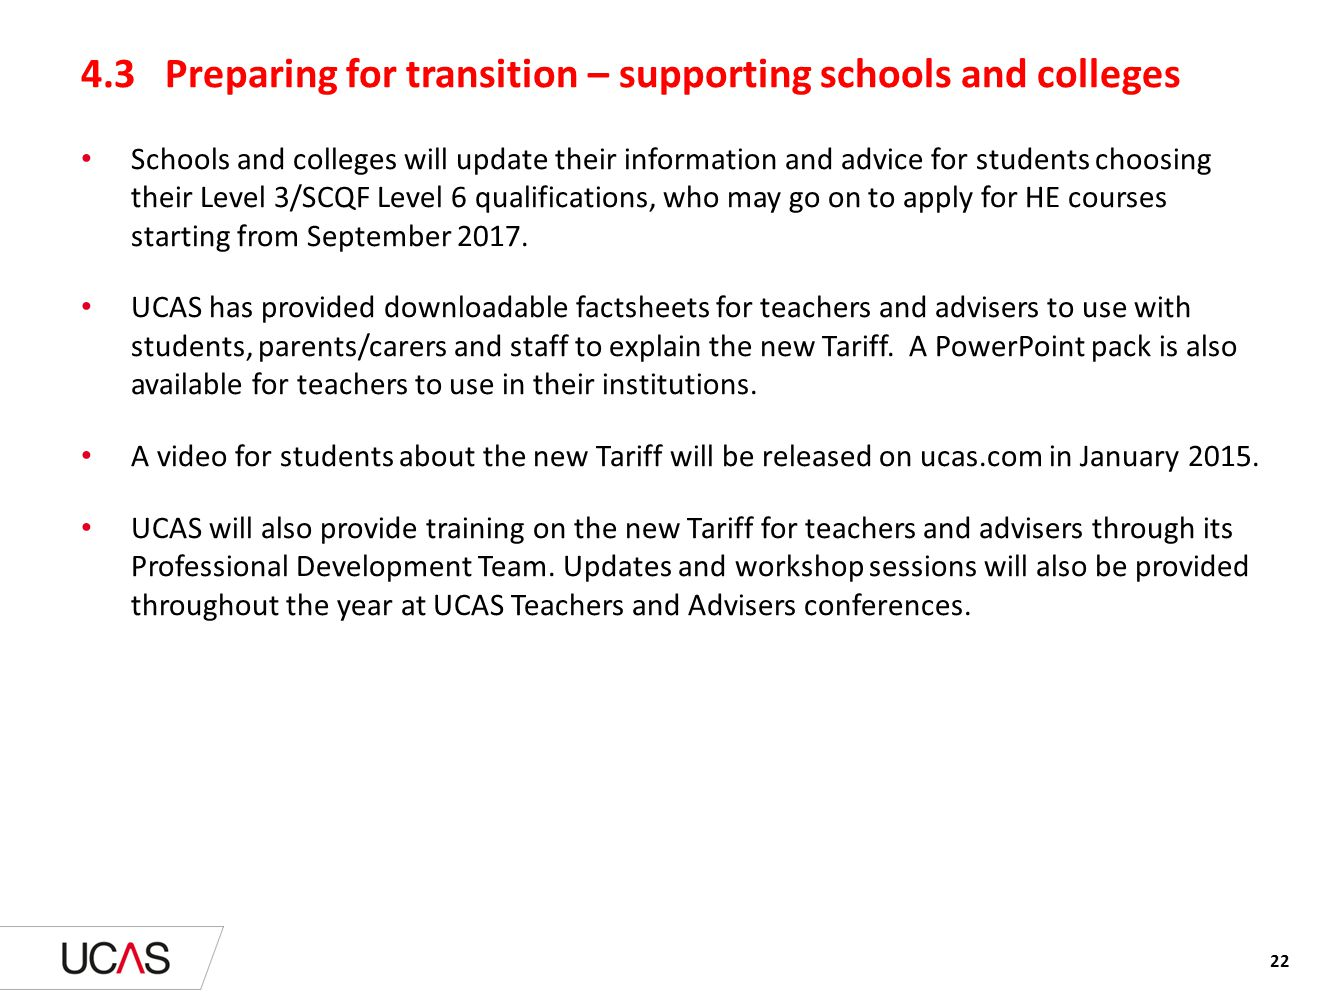 4.3 Preparing for transition – supporting schools and colleges